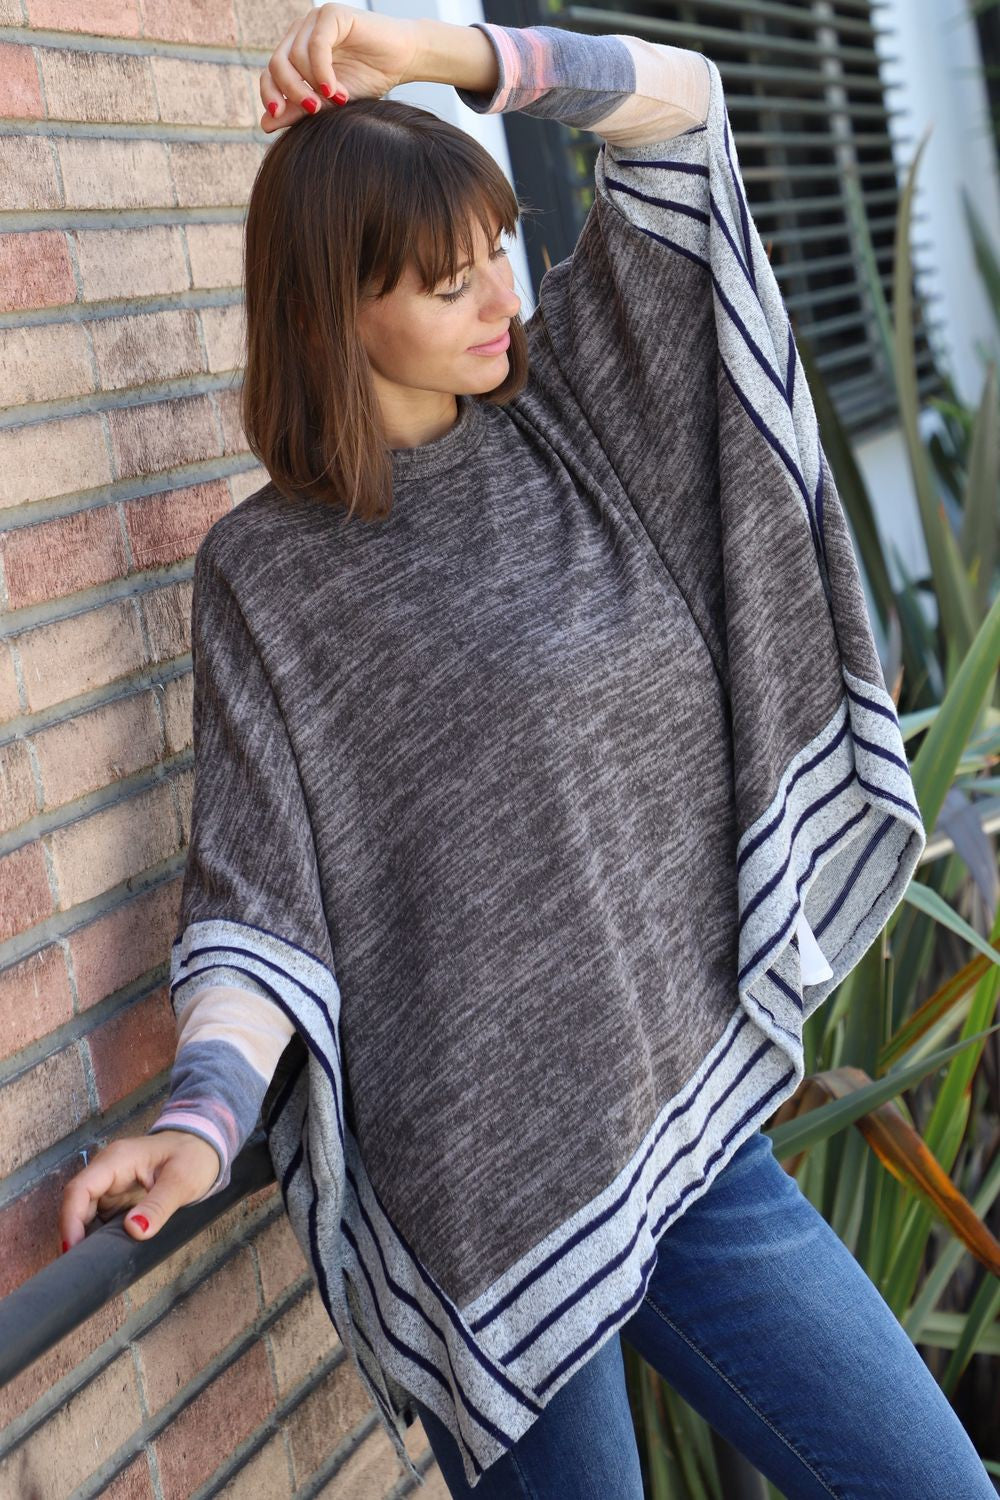 Mocha Brushed Soft Cape Style Poncho Tunic with Stripe Trim Tie-Dye Accent